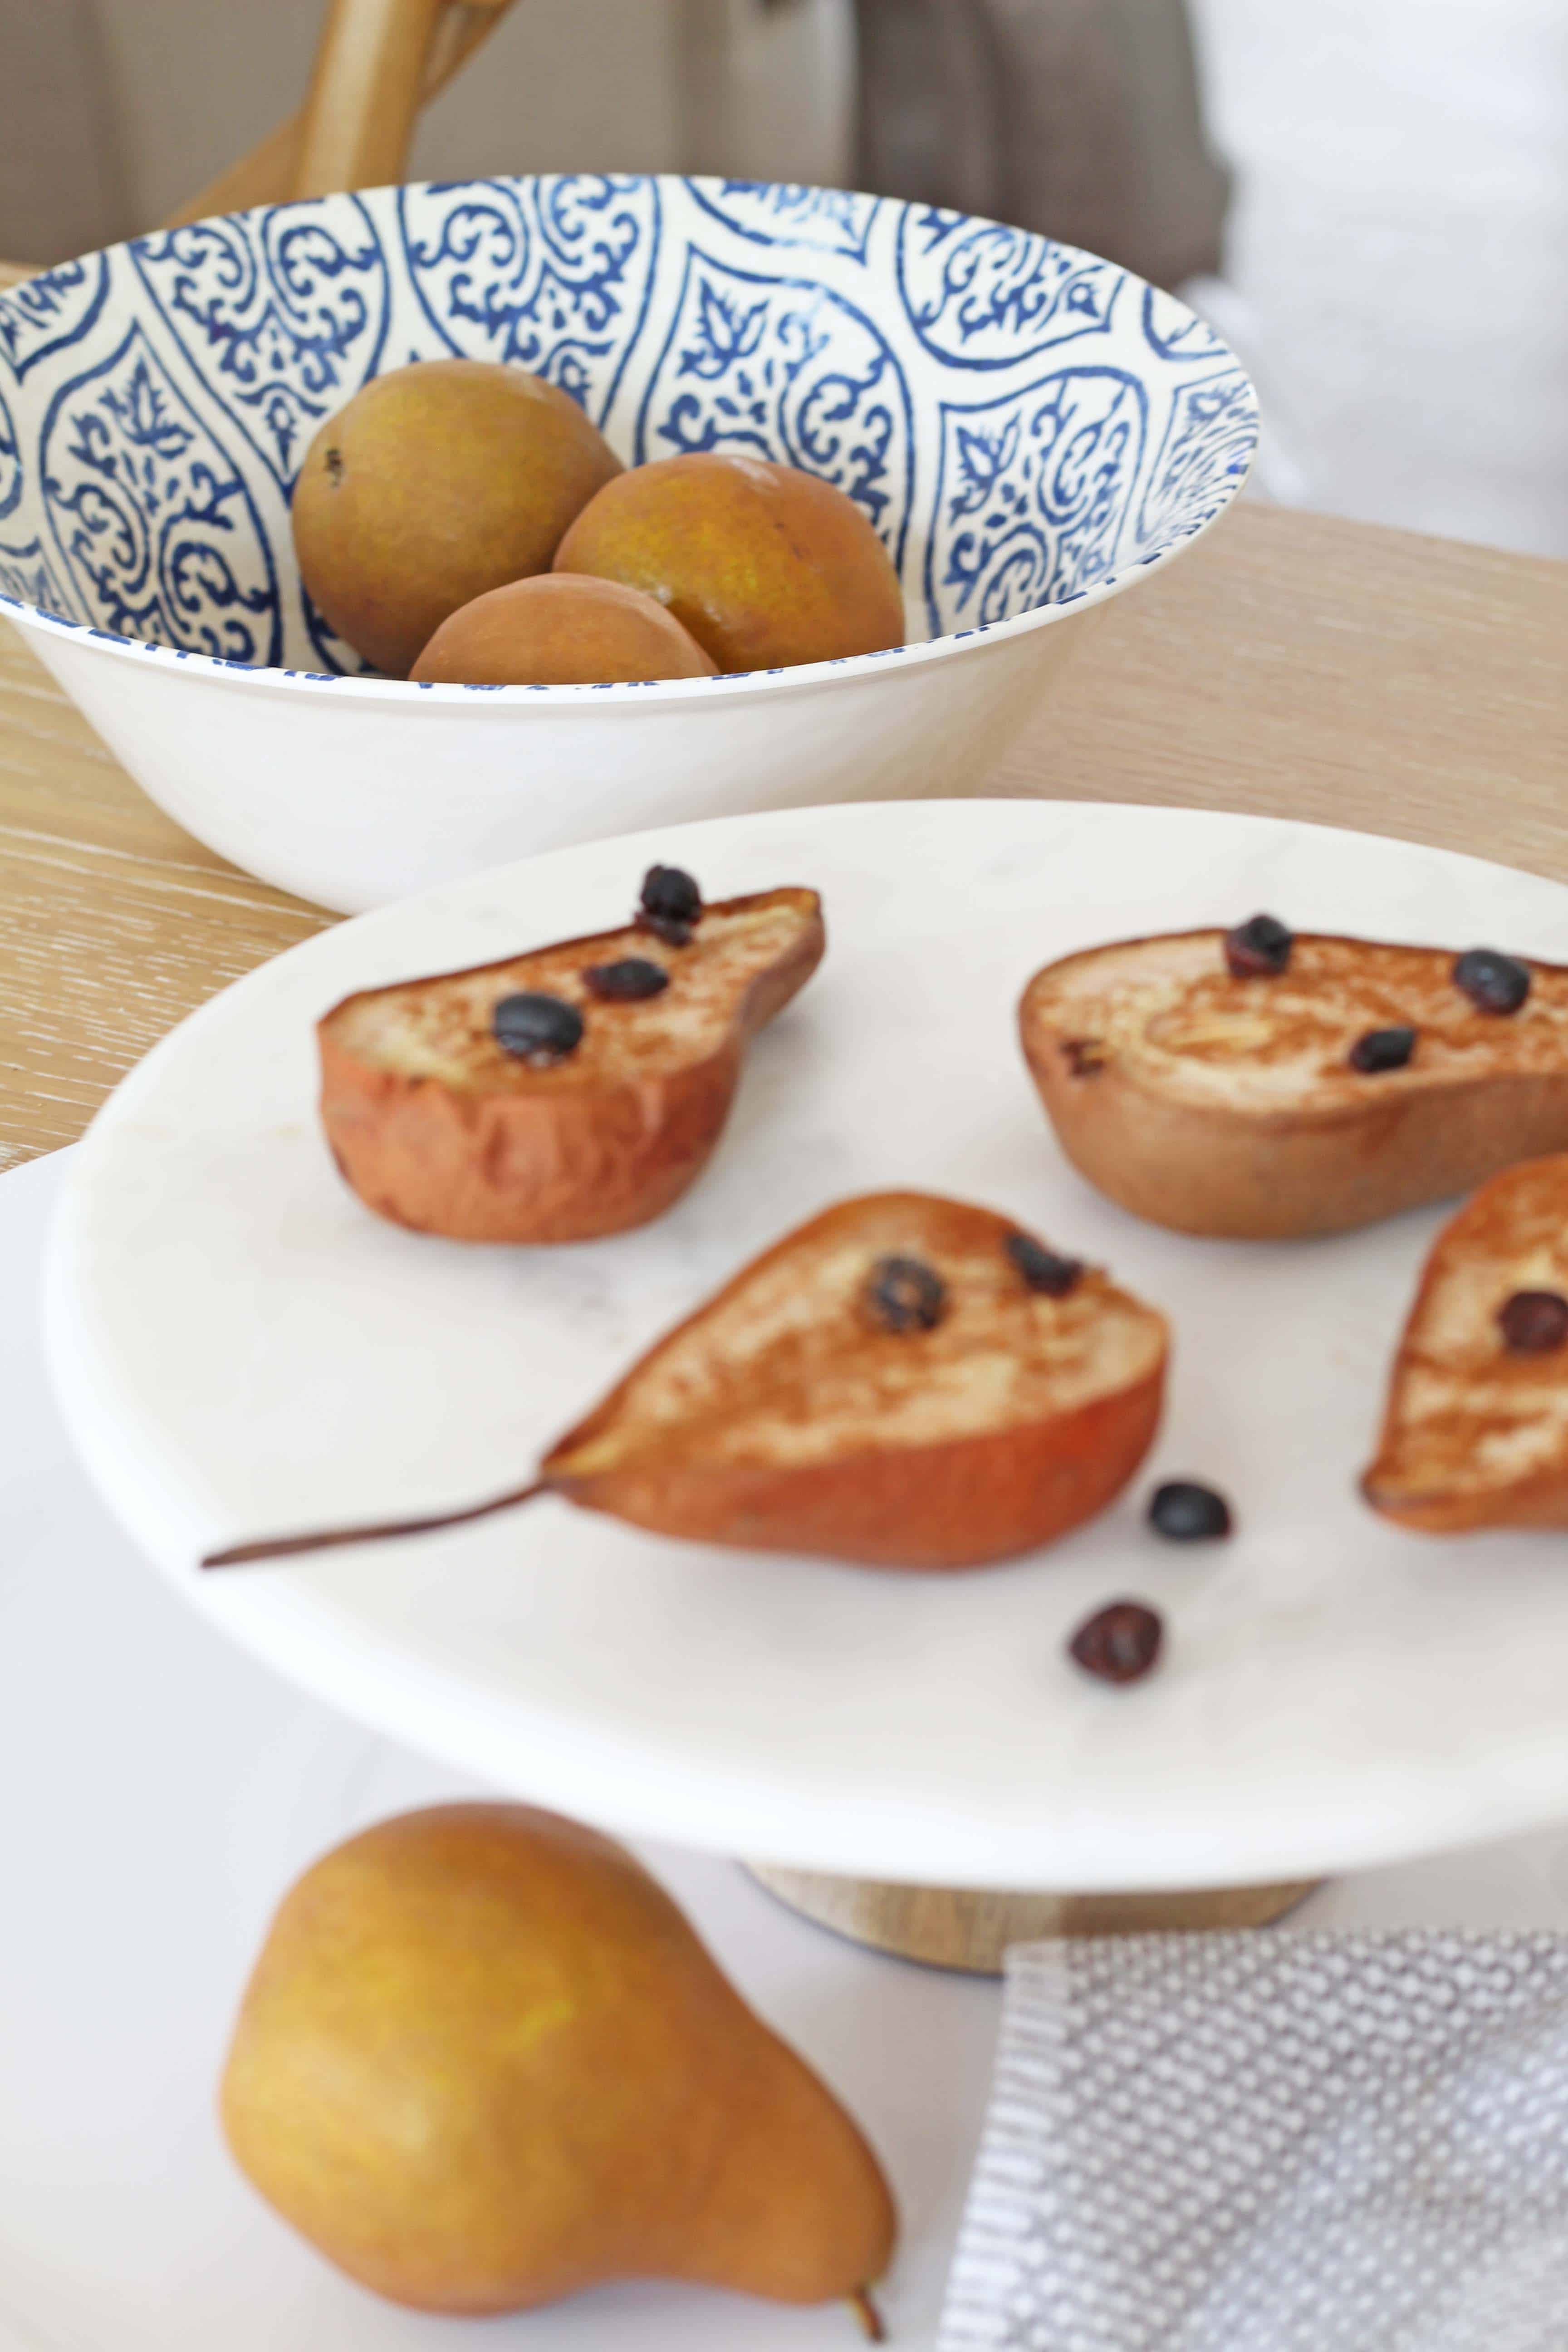 Baked cinnamon pear with currants recipe.